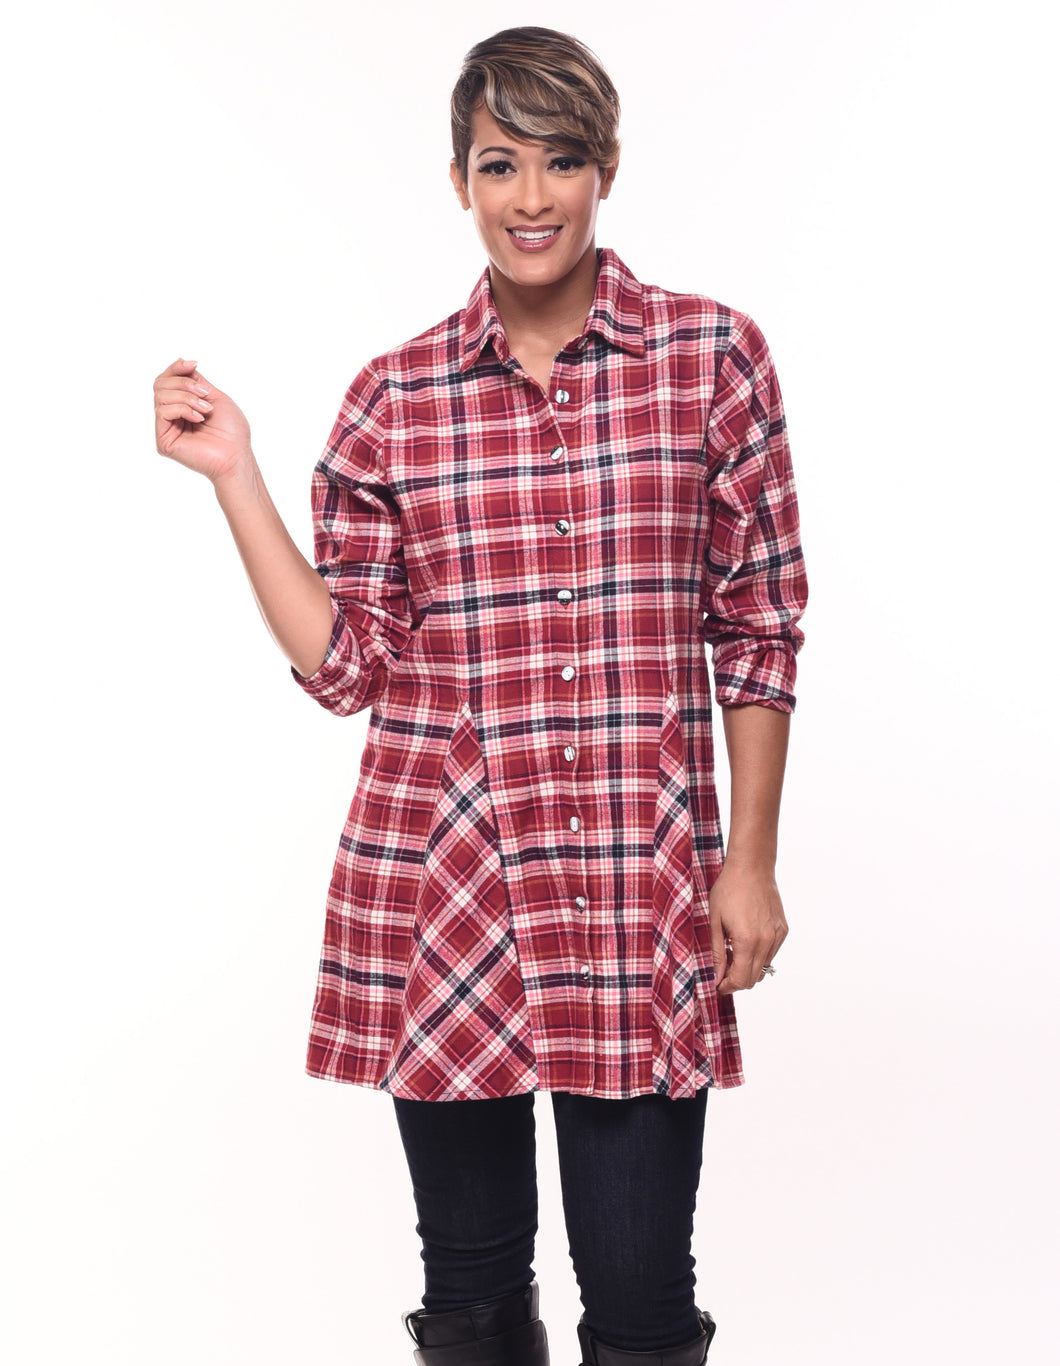 Zoe in Christie Plaid